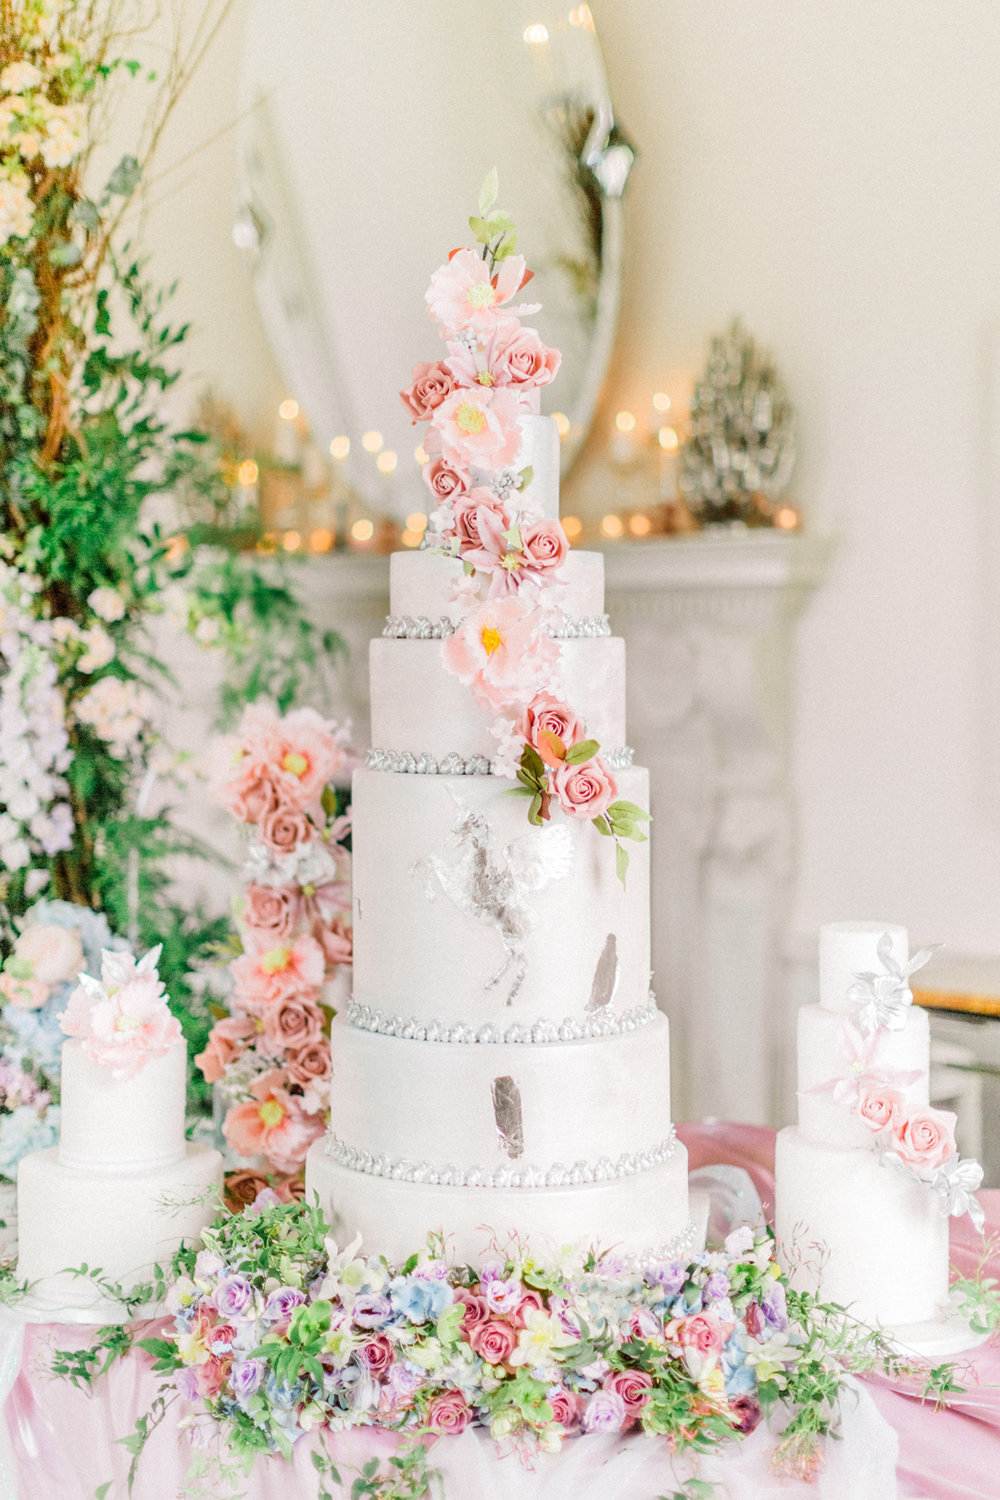 For an ultimately magical cake this 7 tiered beauty featuring a unicorn is the way to go. Cake by Elizabeth's Cake Emporium. Image by Sanshine Photography